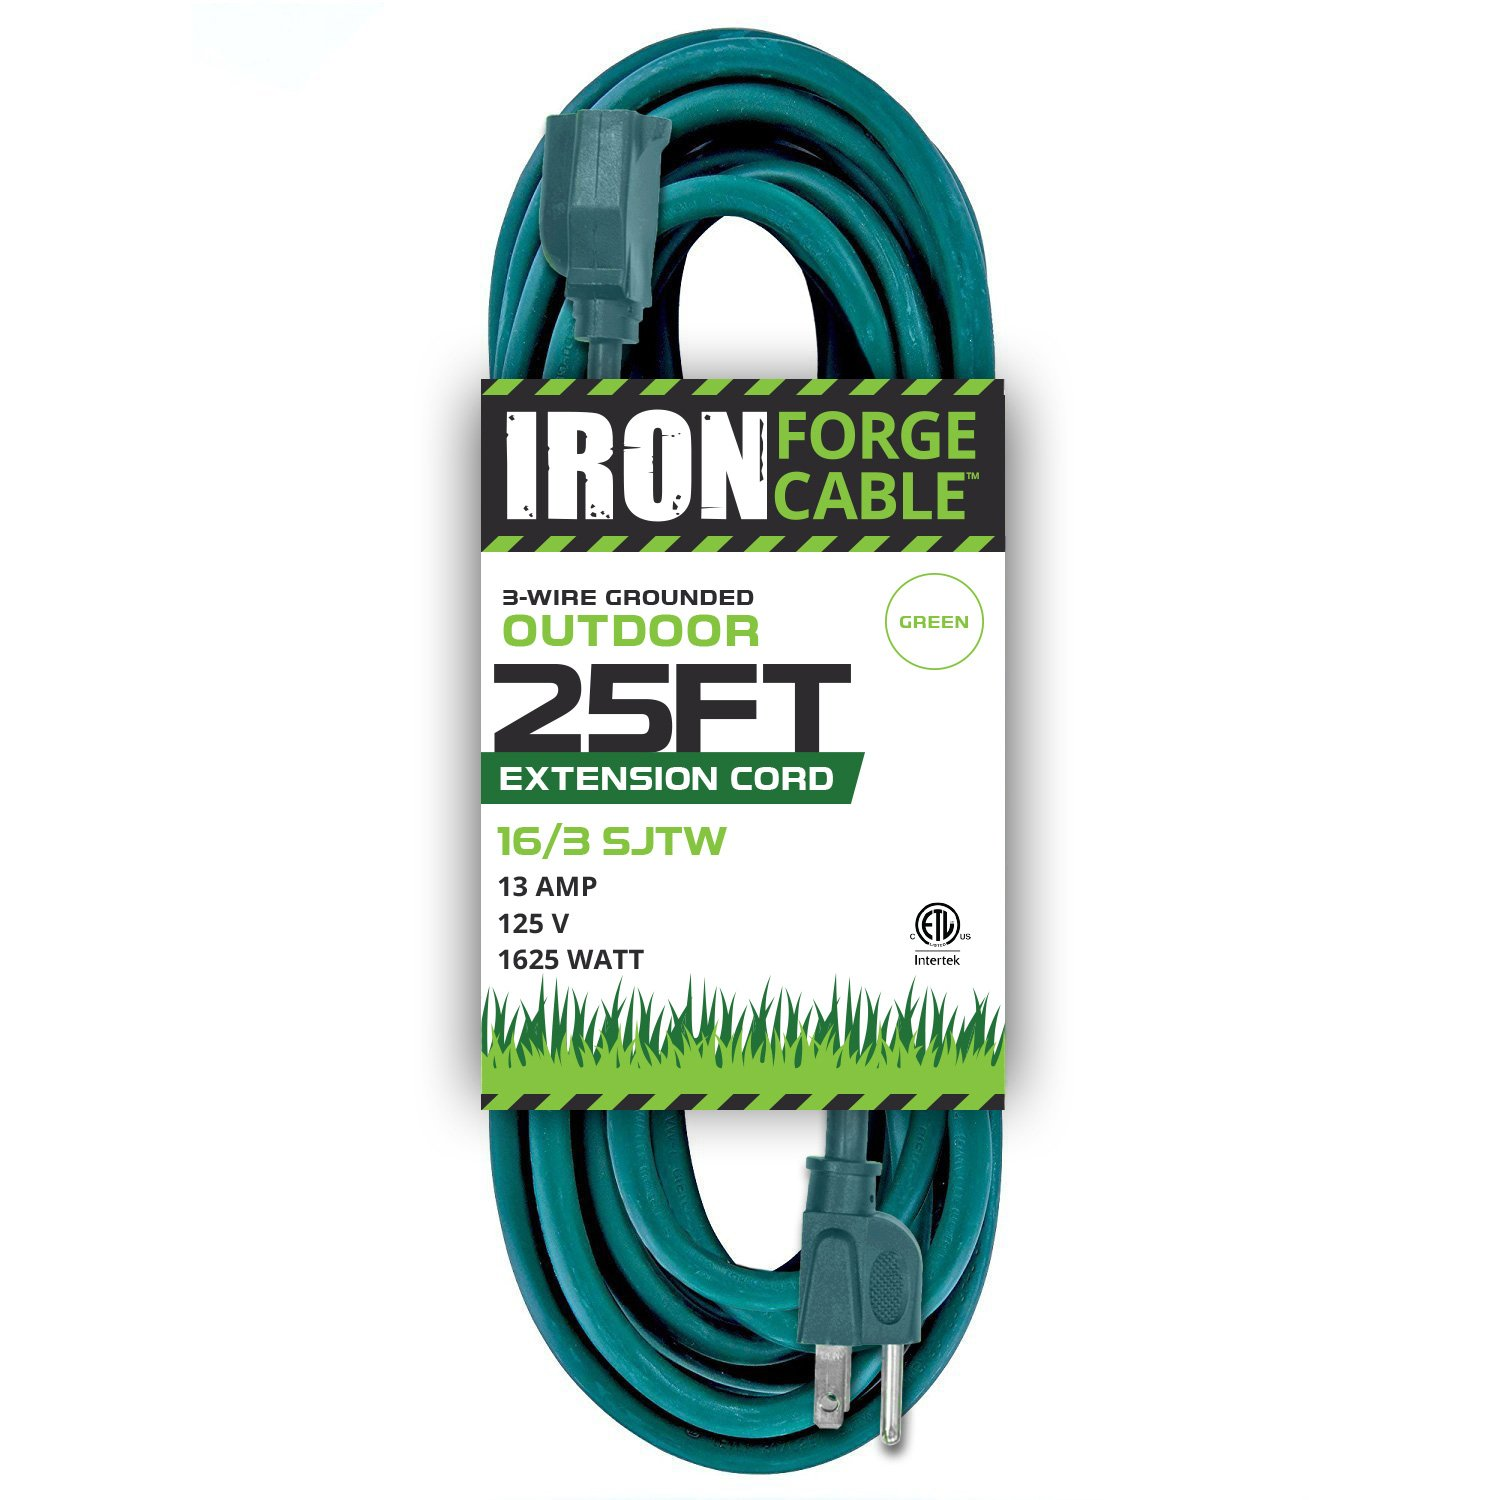 25 Foot Outdoor Extension Cord - 16/3 SJTW Durable Green Extension Cable with 3 Prong Grounded Plug for Safety - Great for Garden and Major Appliances